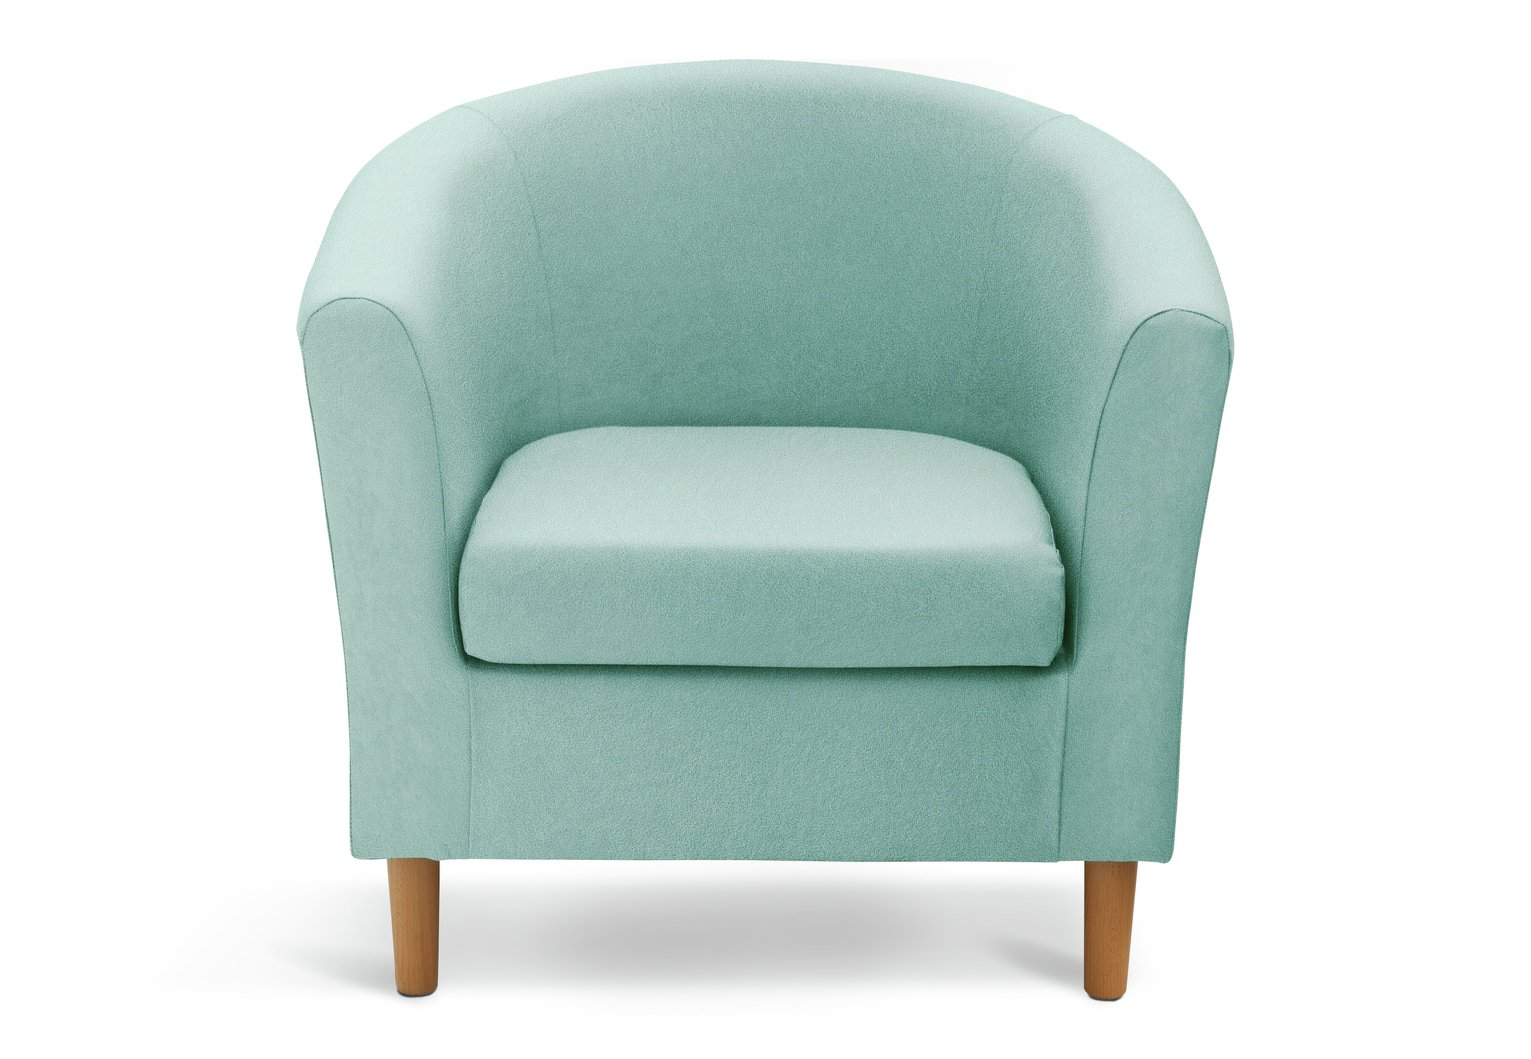 Argos Home Fabric Tub Chair - Duck Egg